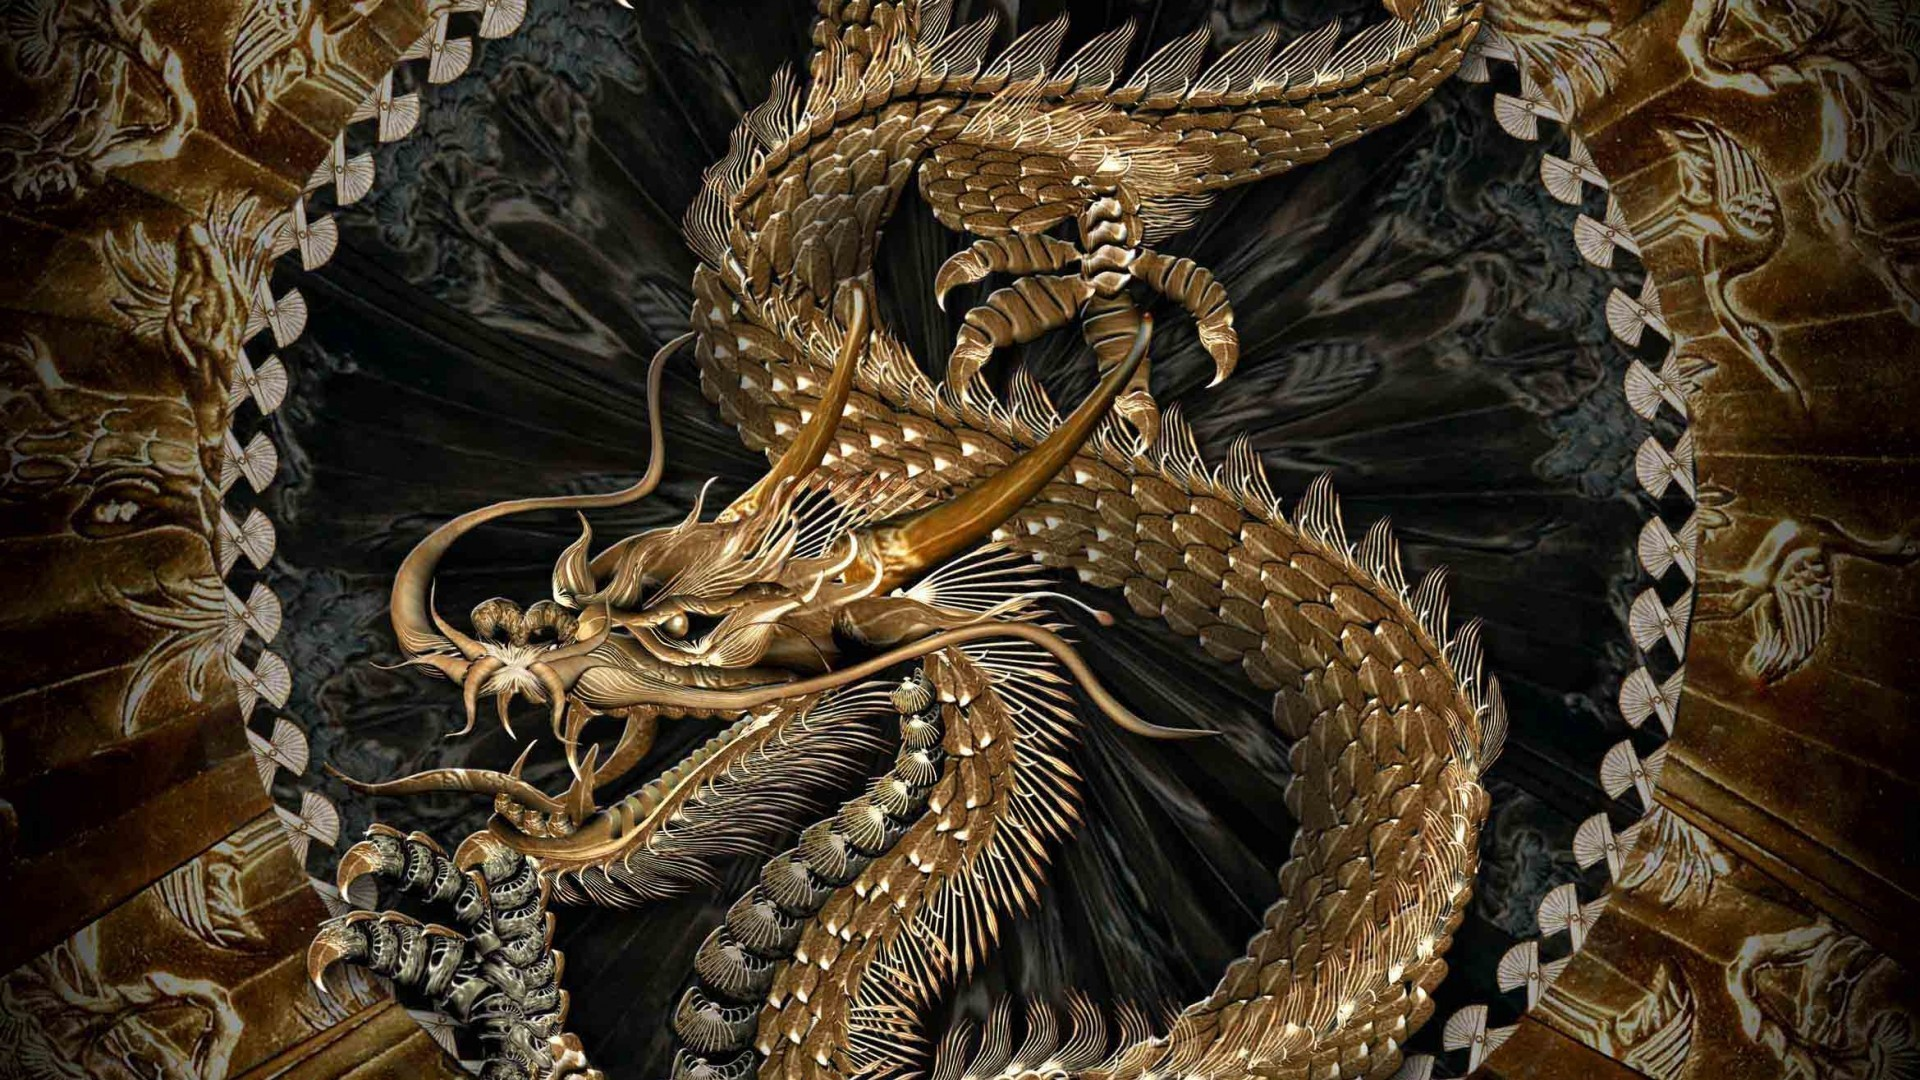 1920x1080 APC Wallpaper Dragon Beautiful Dragon Wallpapers | HD Wallpapers |  Pinterest | Japanese dragon, Dragons and Wallpaper